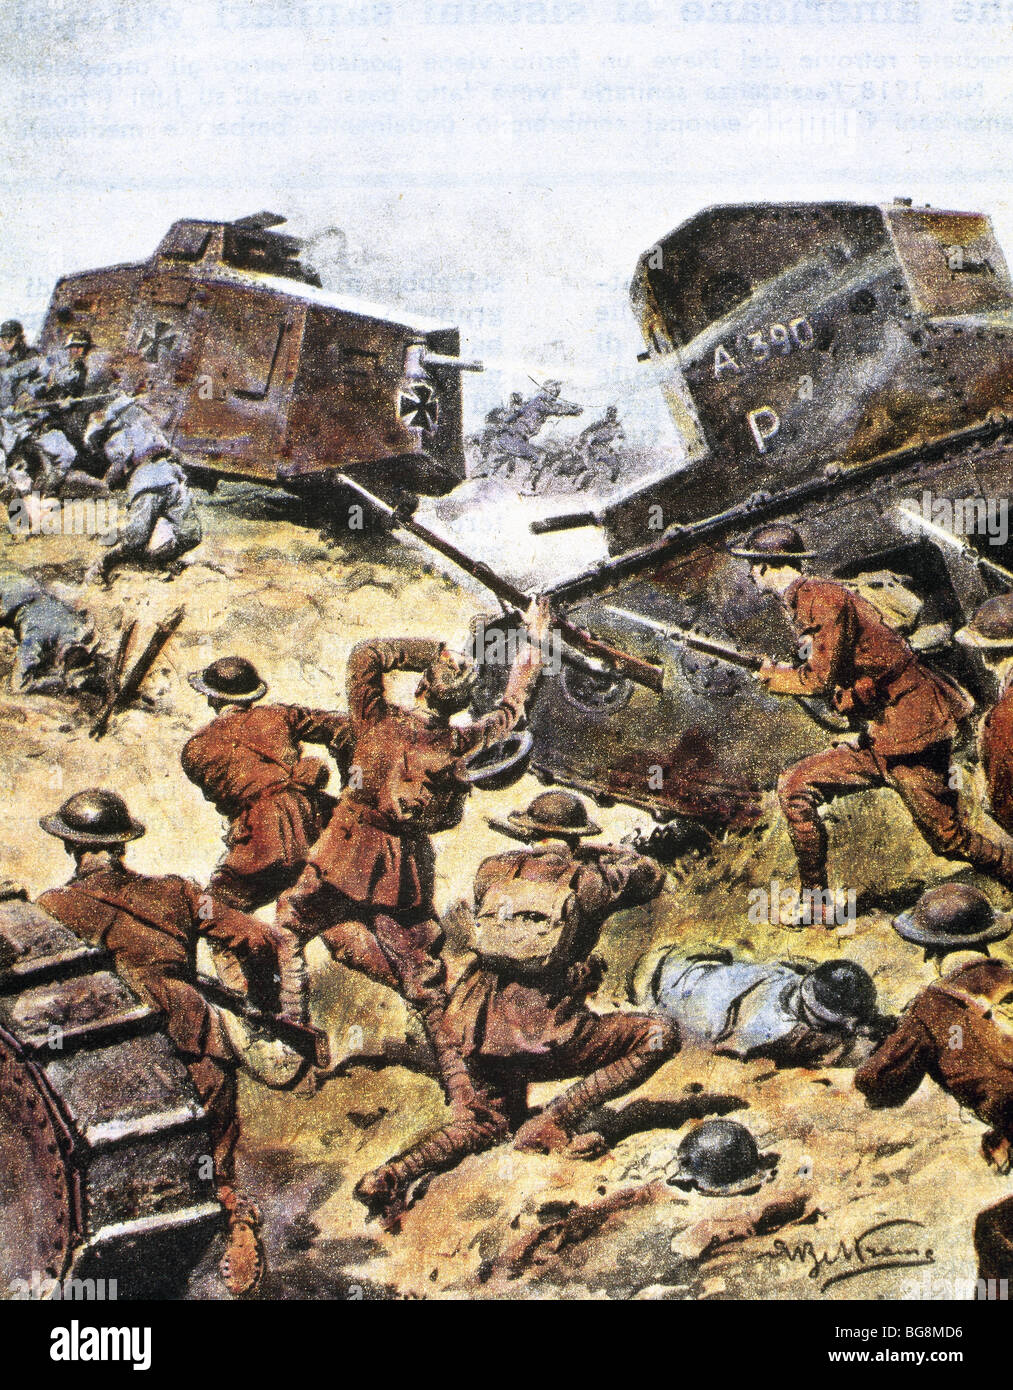 World War I (1914-1918). Battle between Allied and German tanks in May 1918. - Stock Image